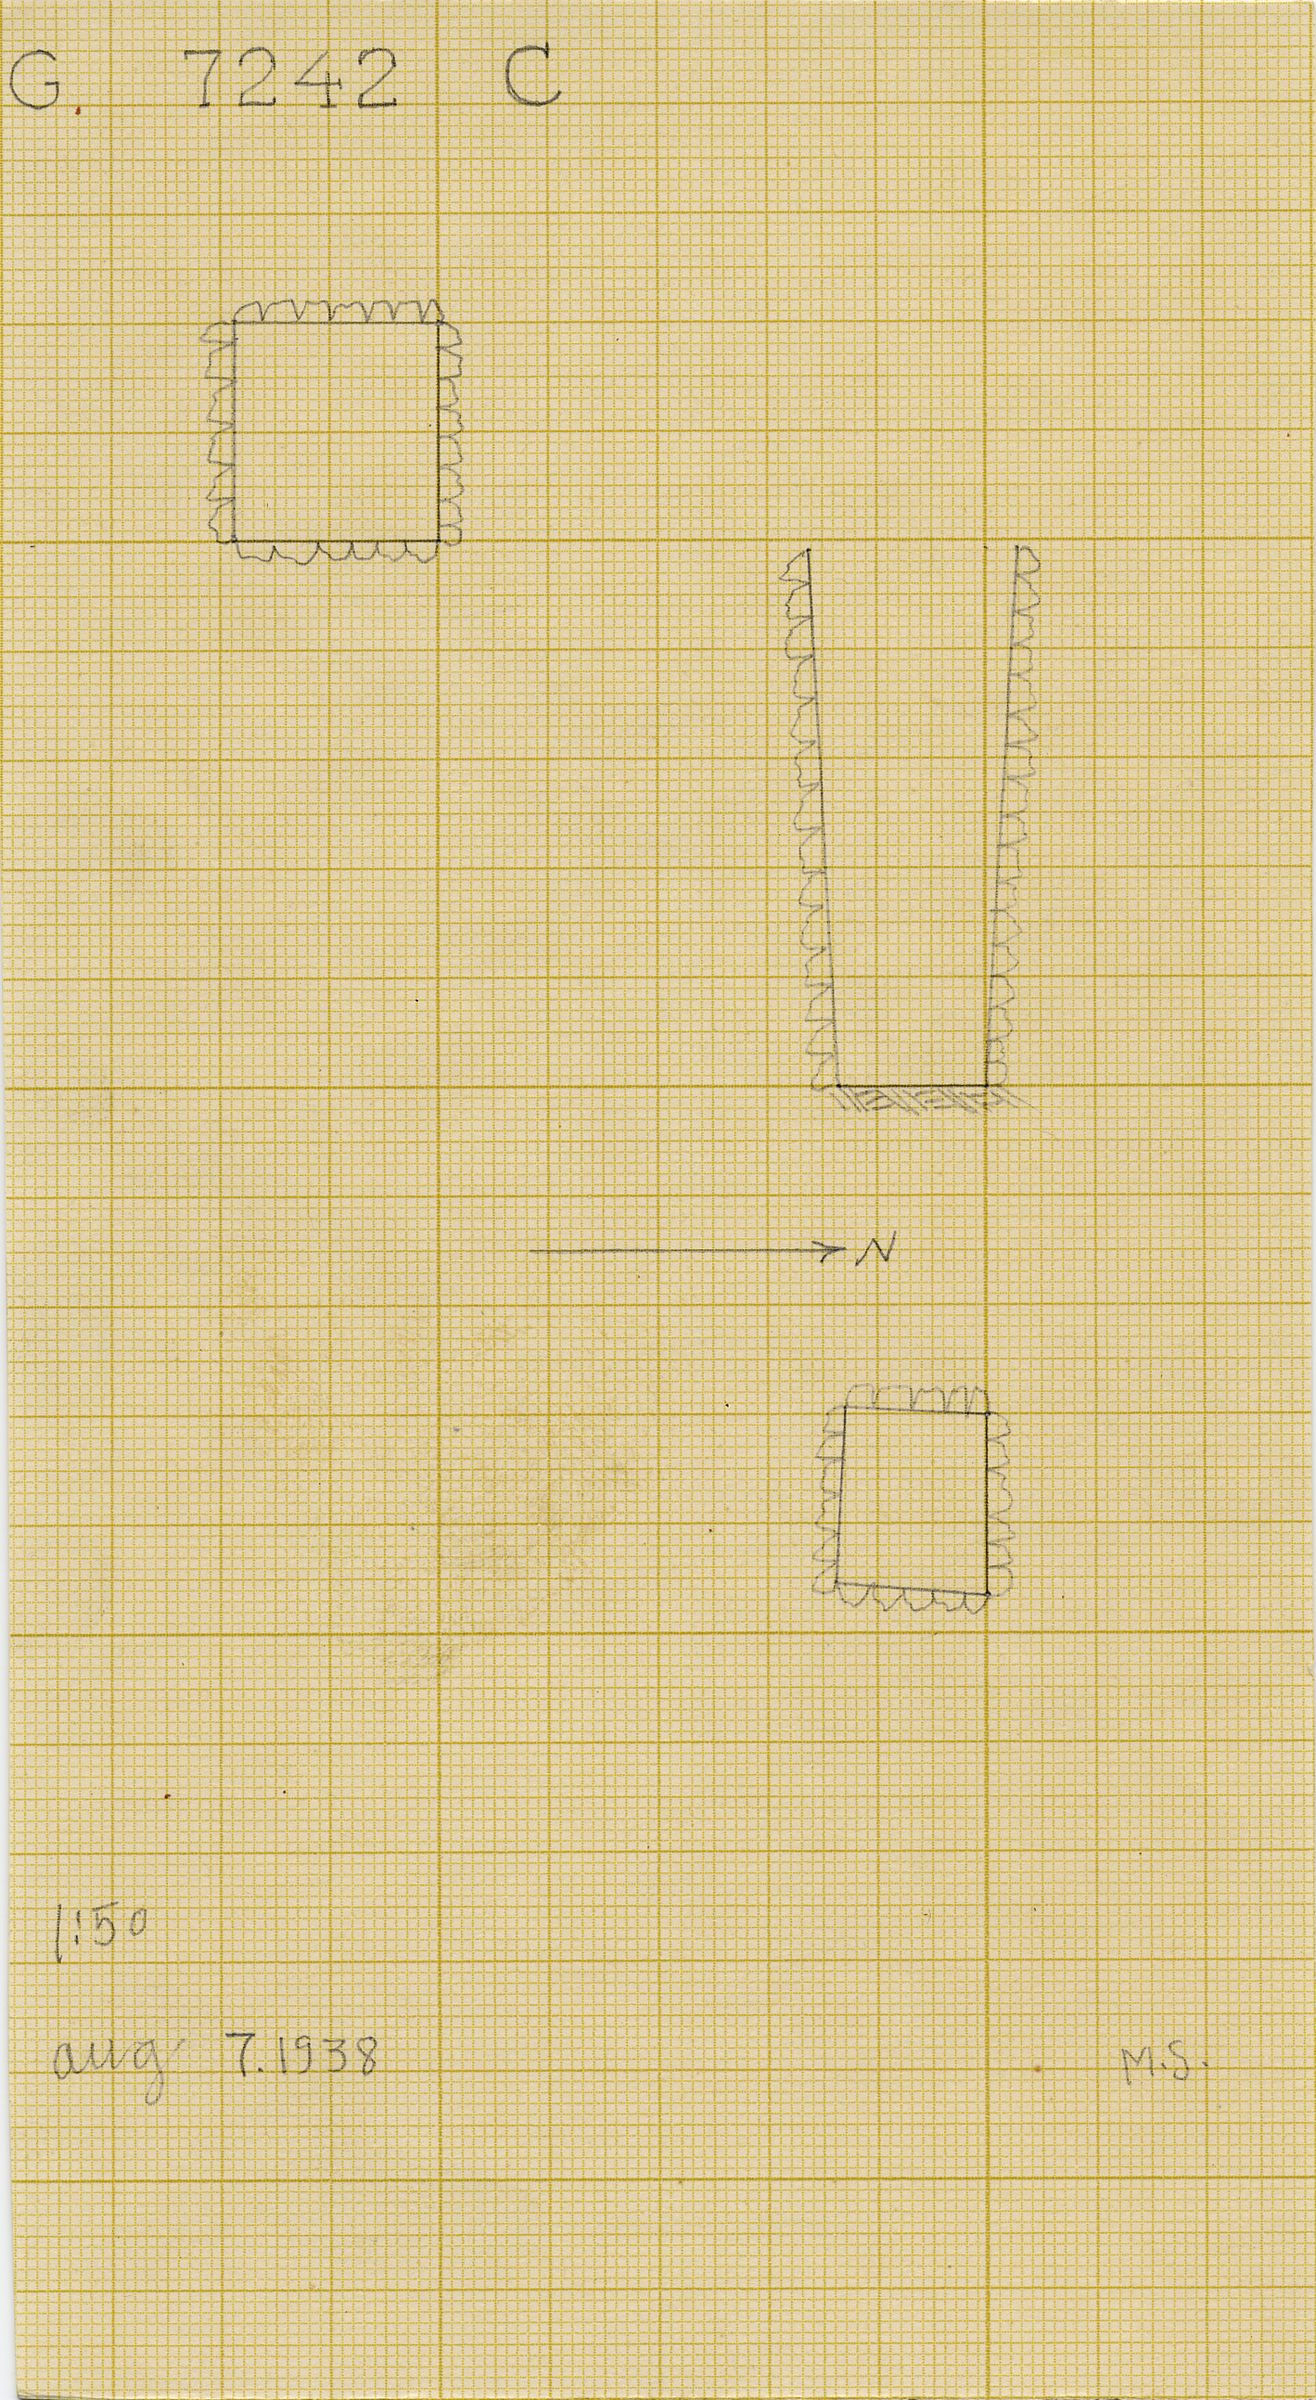 Maps and plans: G 7242, Shaft C